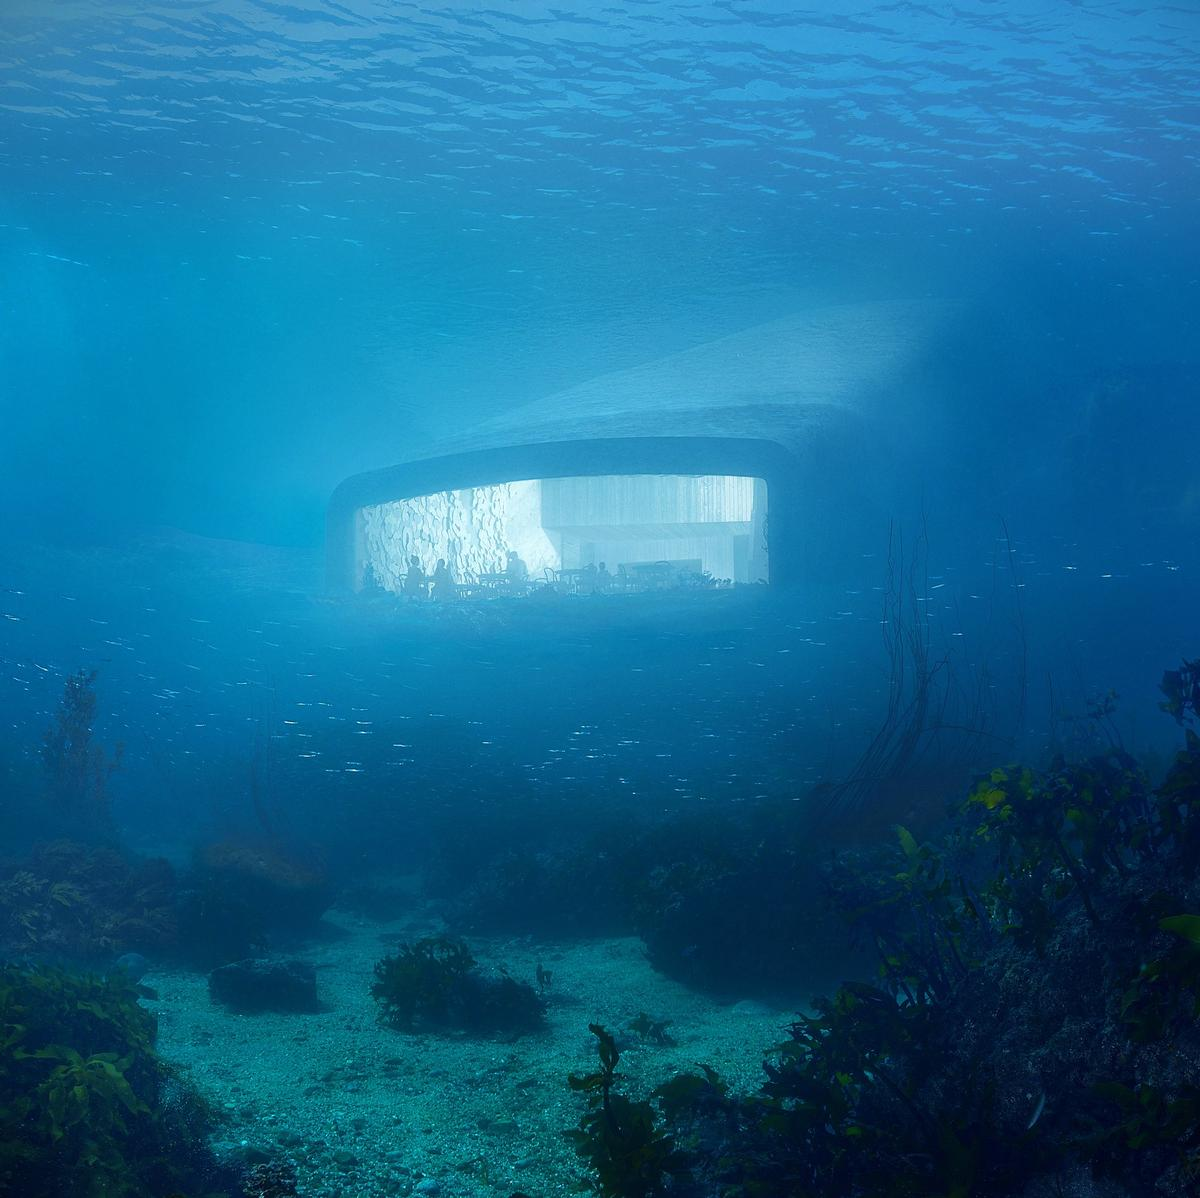 Researchers will make use of Under's large acrylic windows to study the surrounding ocean life / Courtesy of Snøhetta